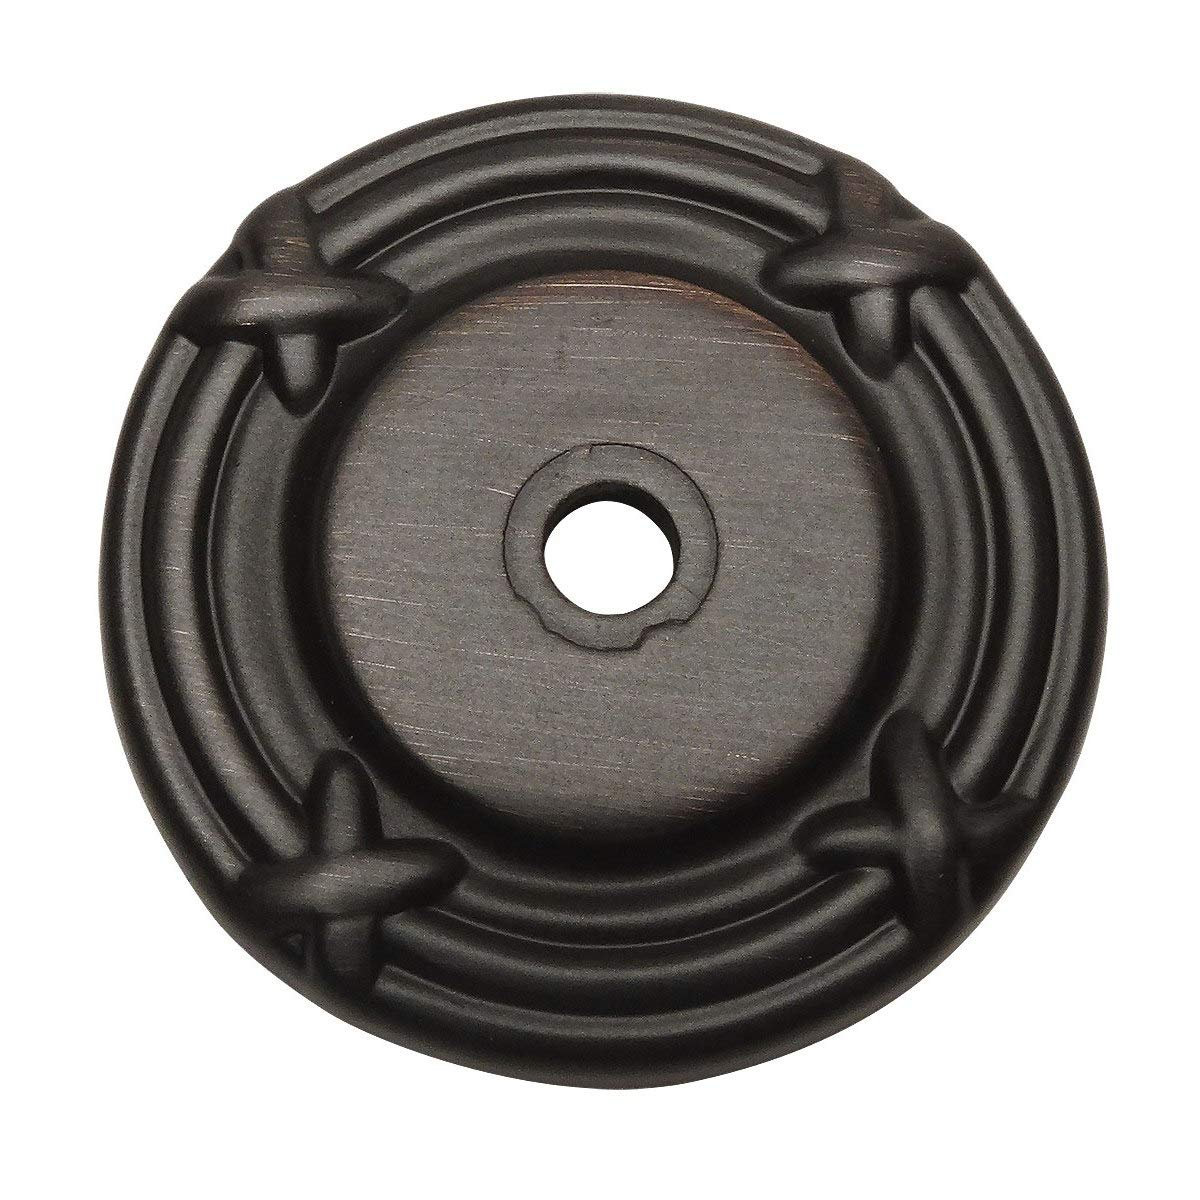 25 Pack - Cosmas 9468ORB Oil Rubbed Bronze Cabinet Hardware Knob Backplate/Back Plate